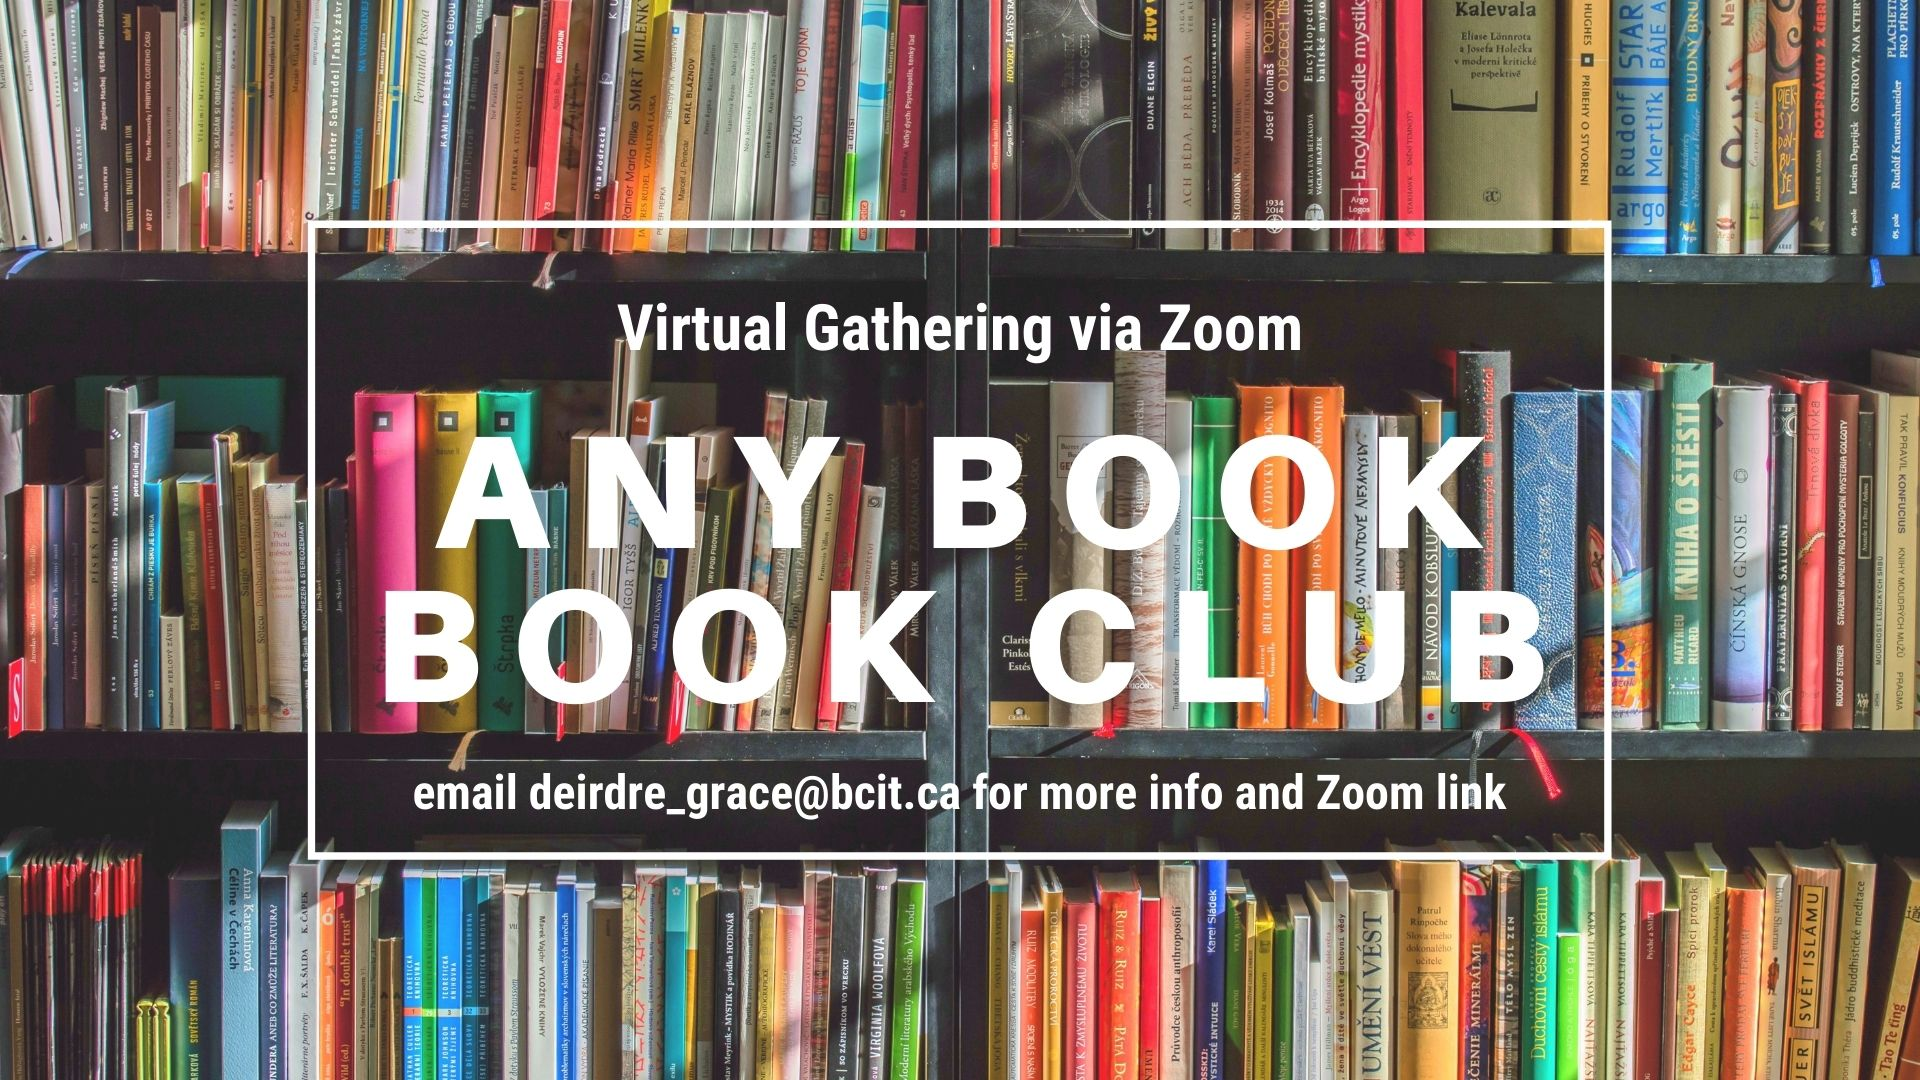 Any Book Book Club